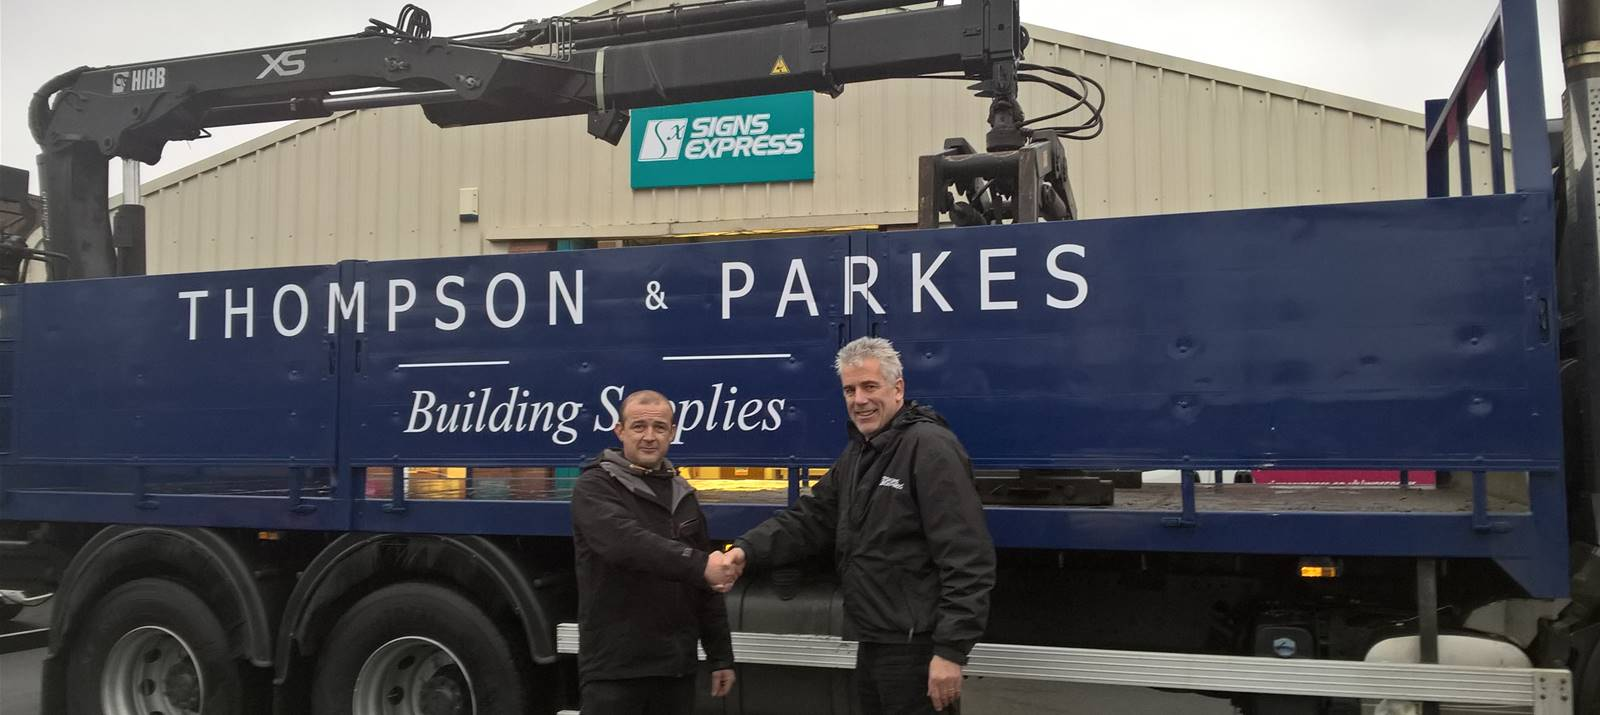 Vinyl graphics for building services lorry in Worcester